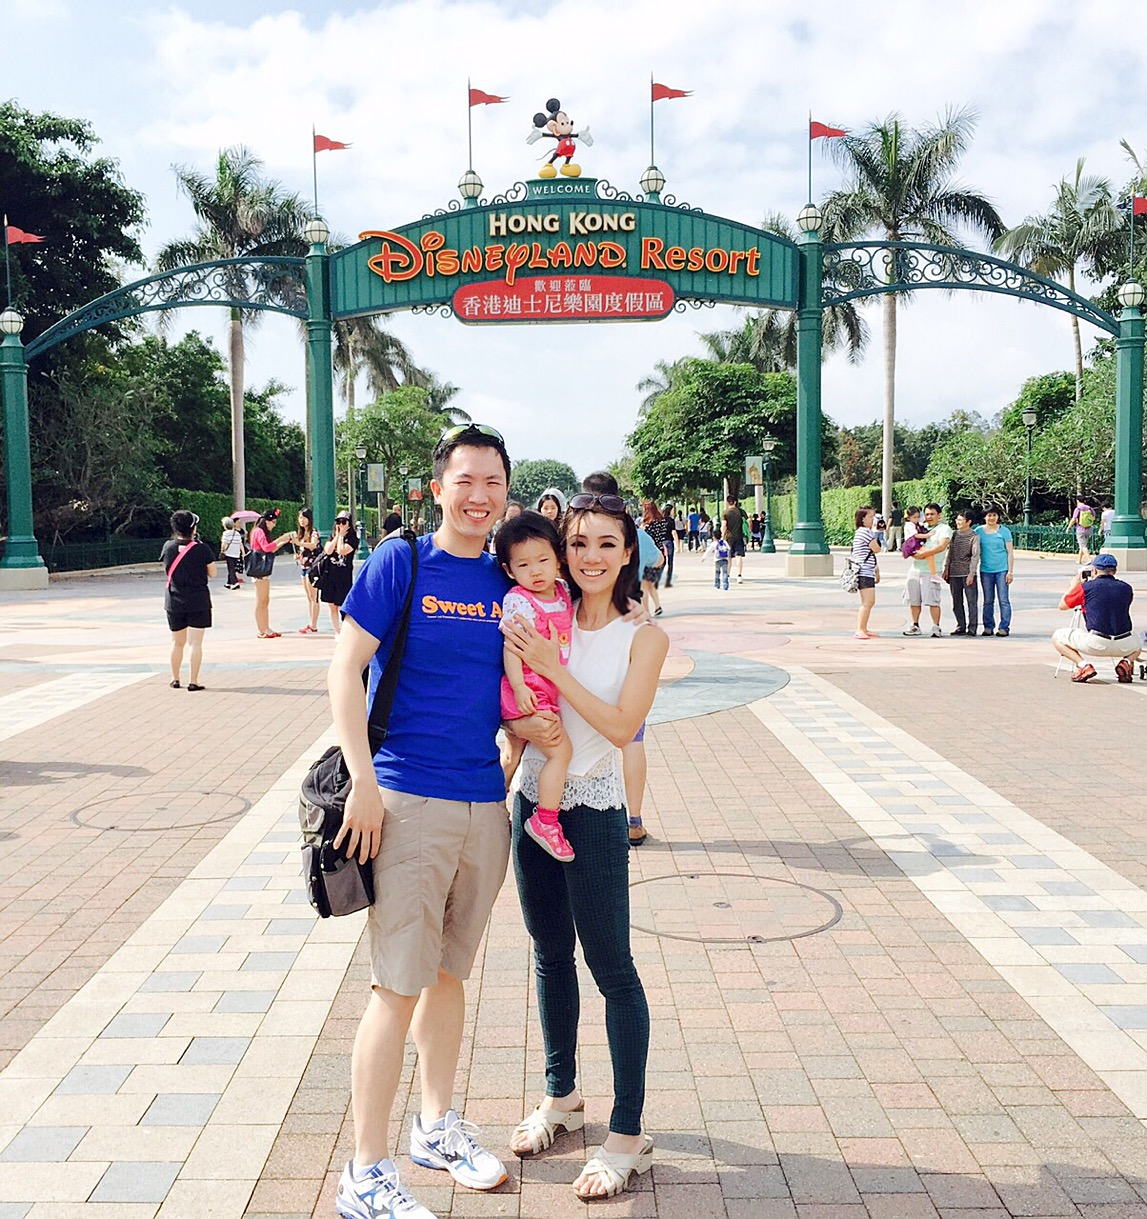 hong kong disneyland recommendation Hong kong disneyland operates on a paper fastpass system like disneyland you take your ticket to kiosks, scan it, and receive a paper fastpass with a return time you should be able to use fastpass at all three rides it's available for in a single day: ironman experience, winnie the pooh, and hyperspace mountain.